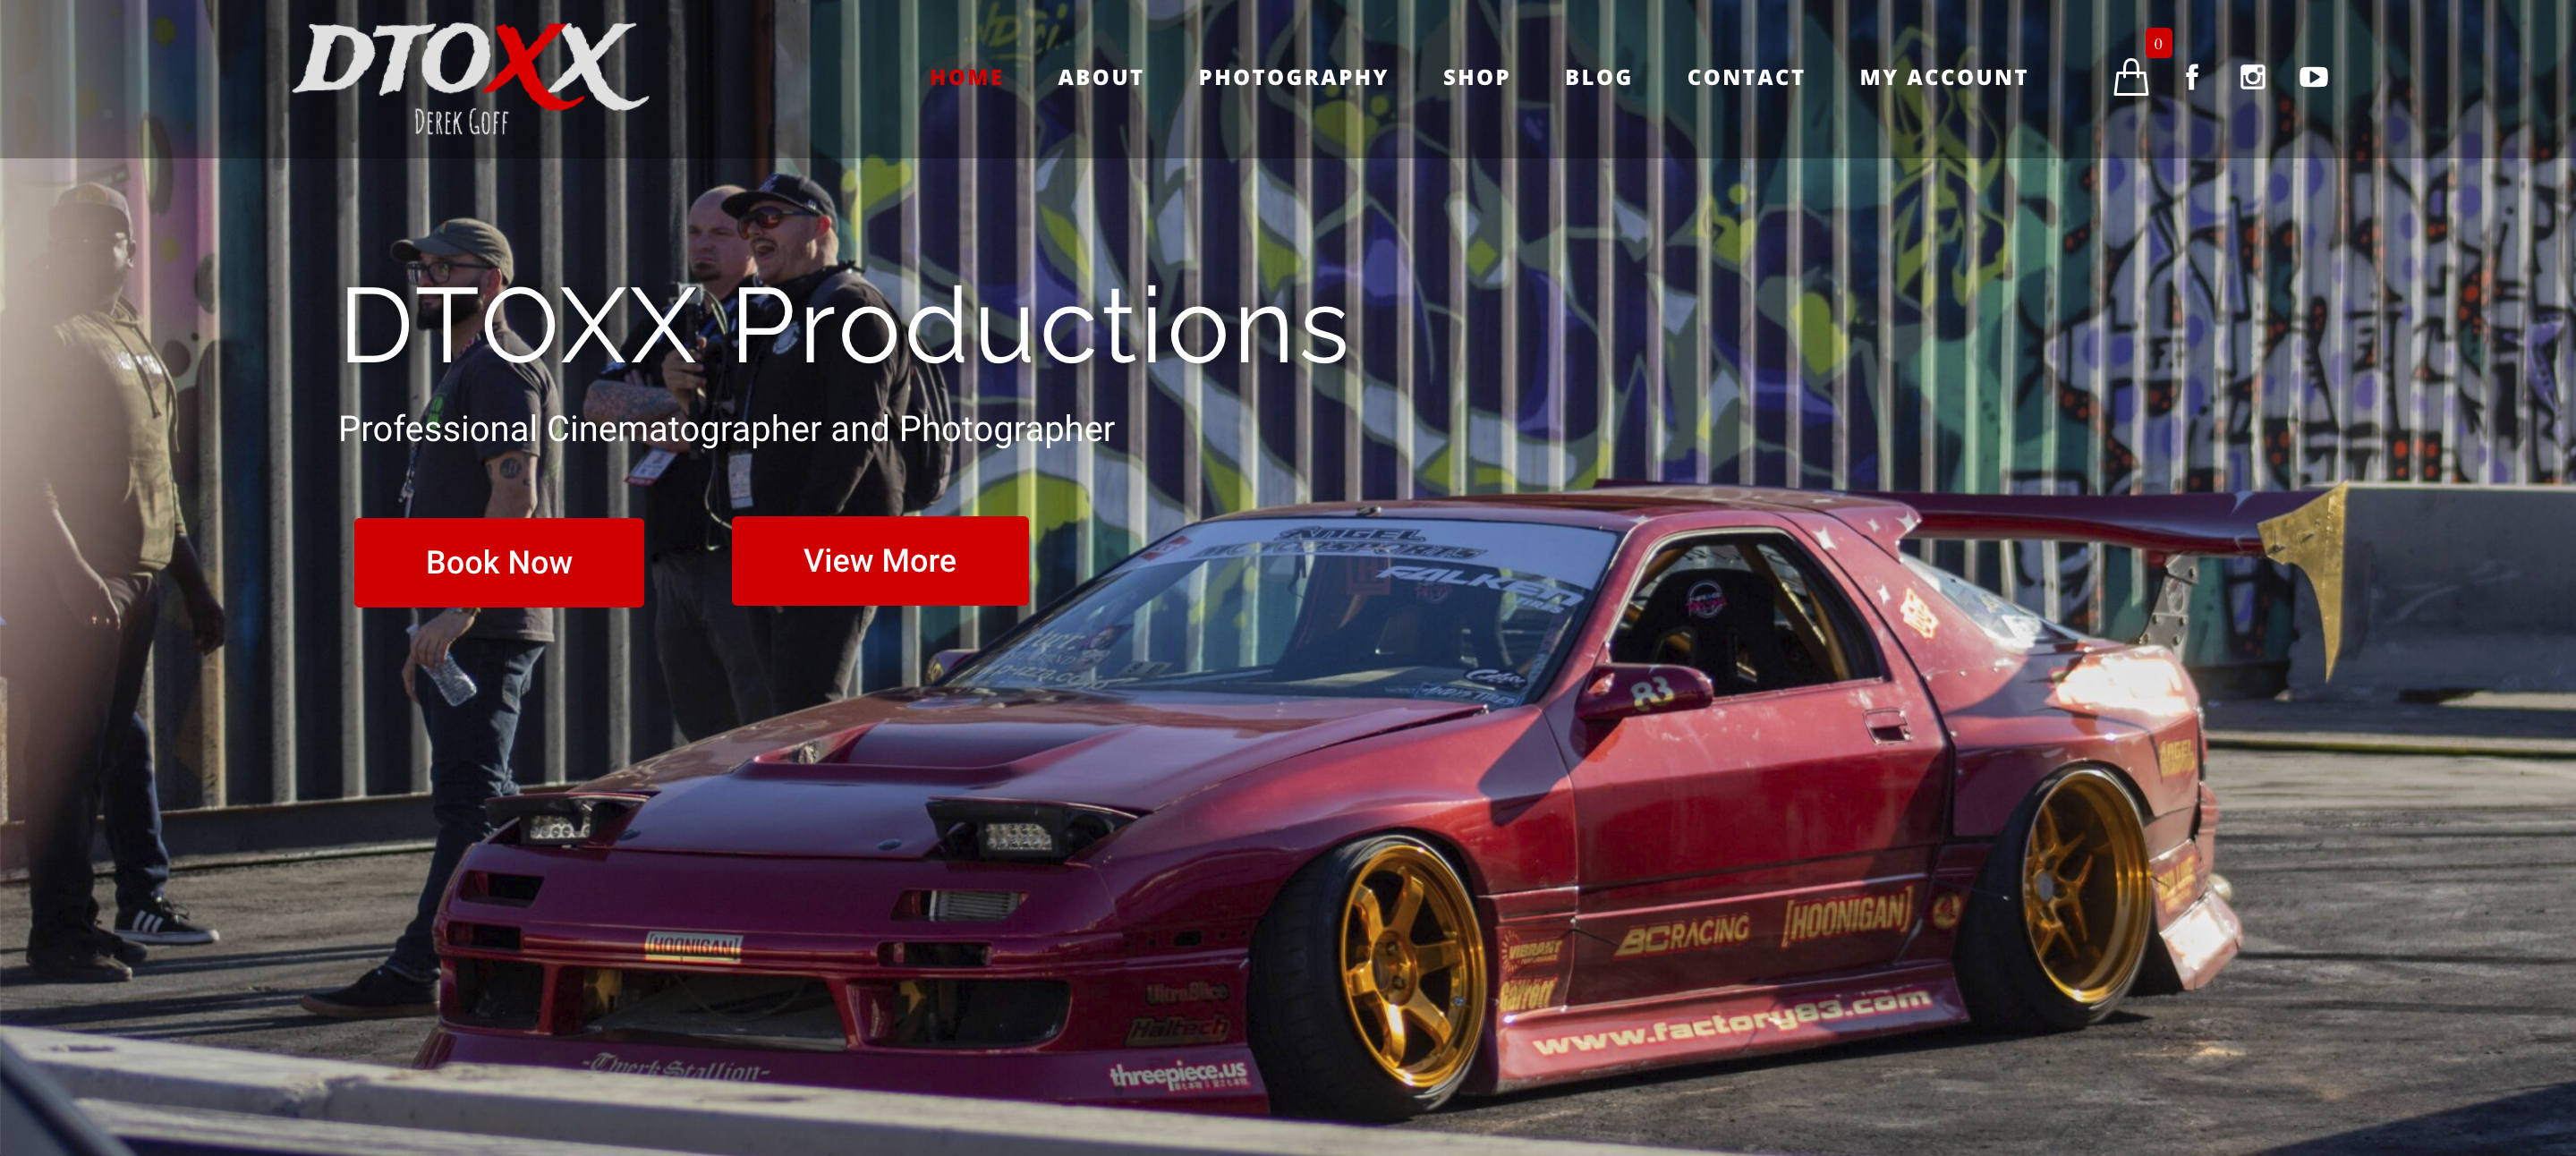 DTOXX Productions Website